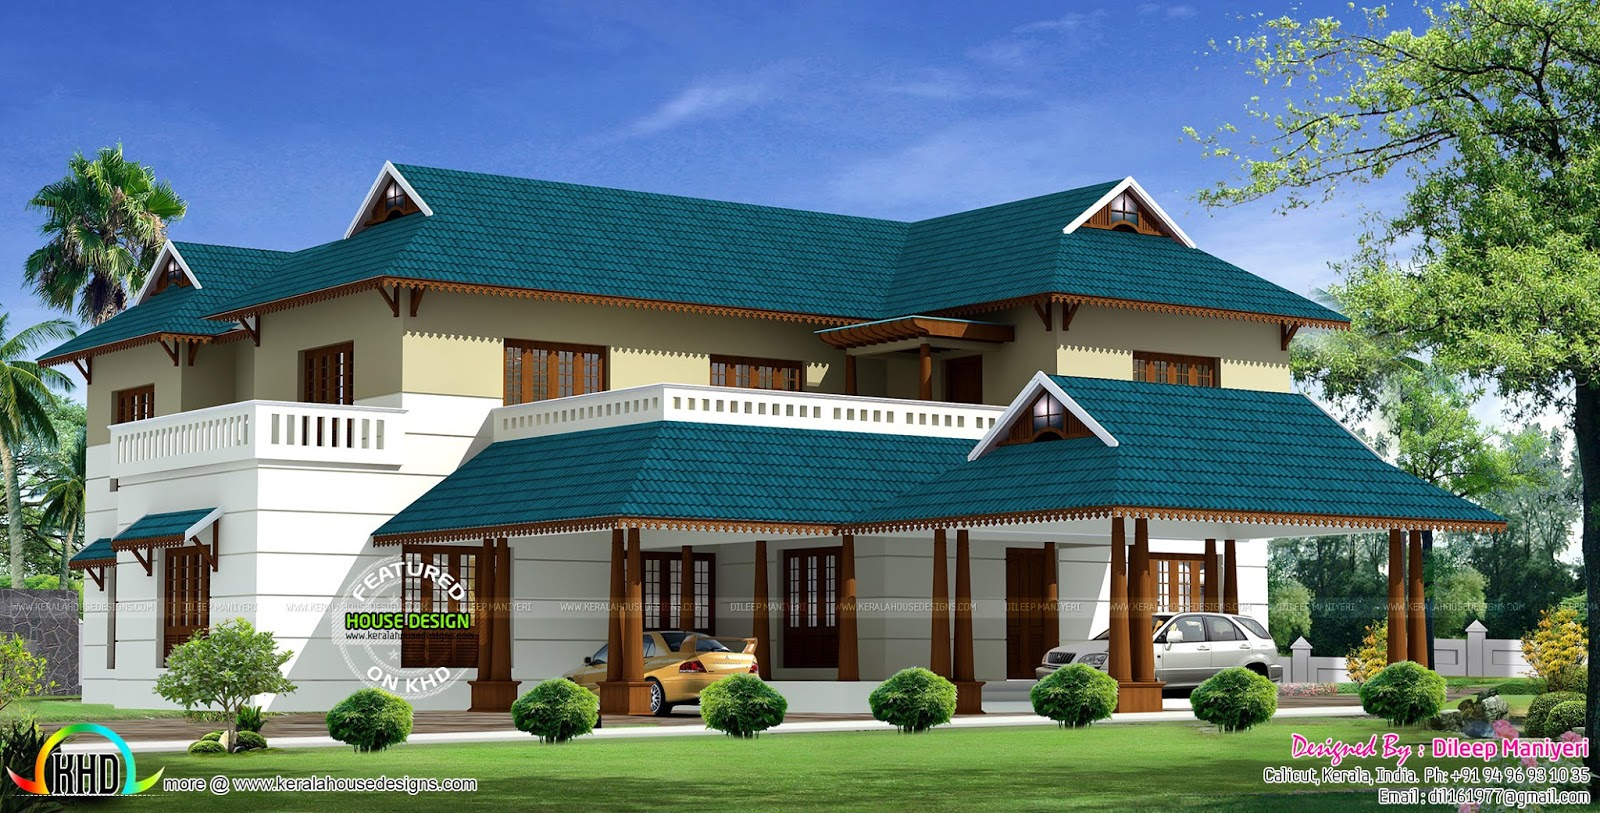 405 sq yd traditional kerala home design kerala home for Kerala traditional home plans with photos